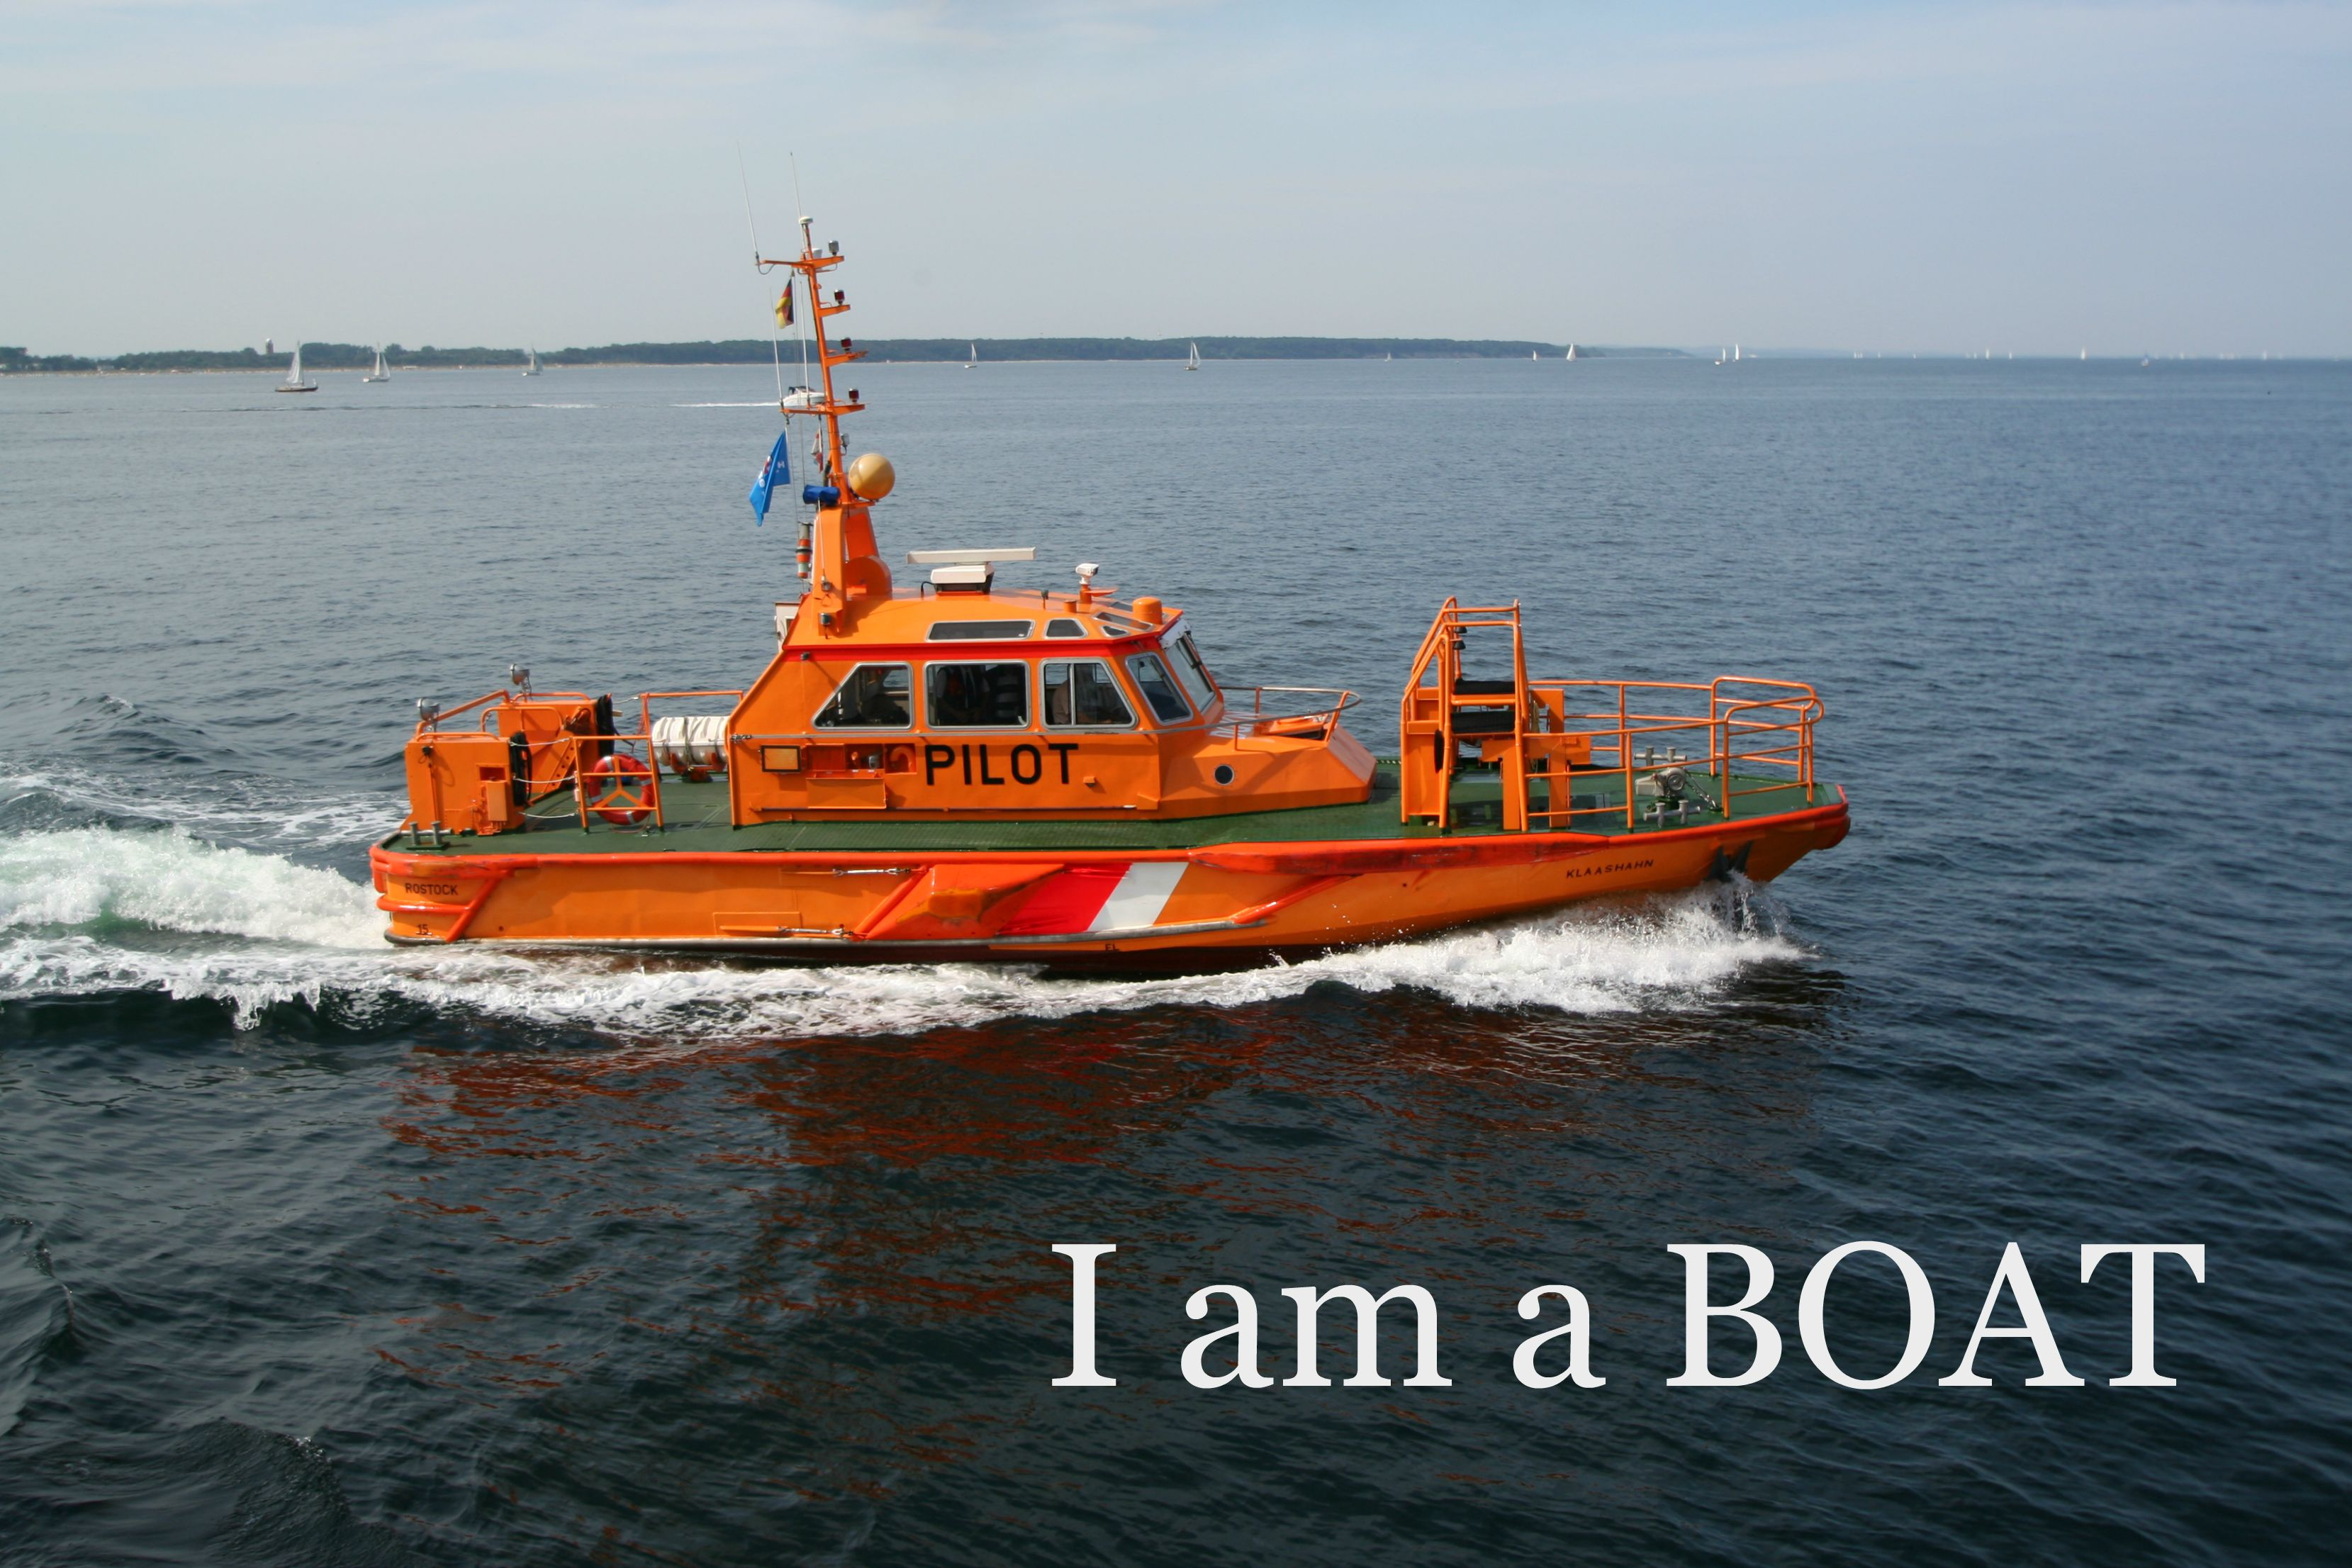 Welcome aboard boat ships life ring clock - Pilot Boat